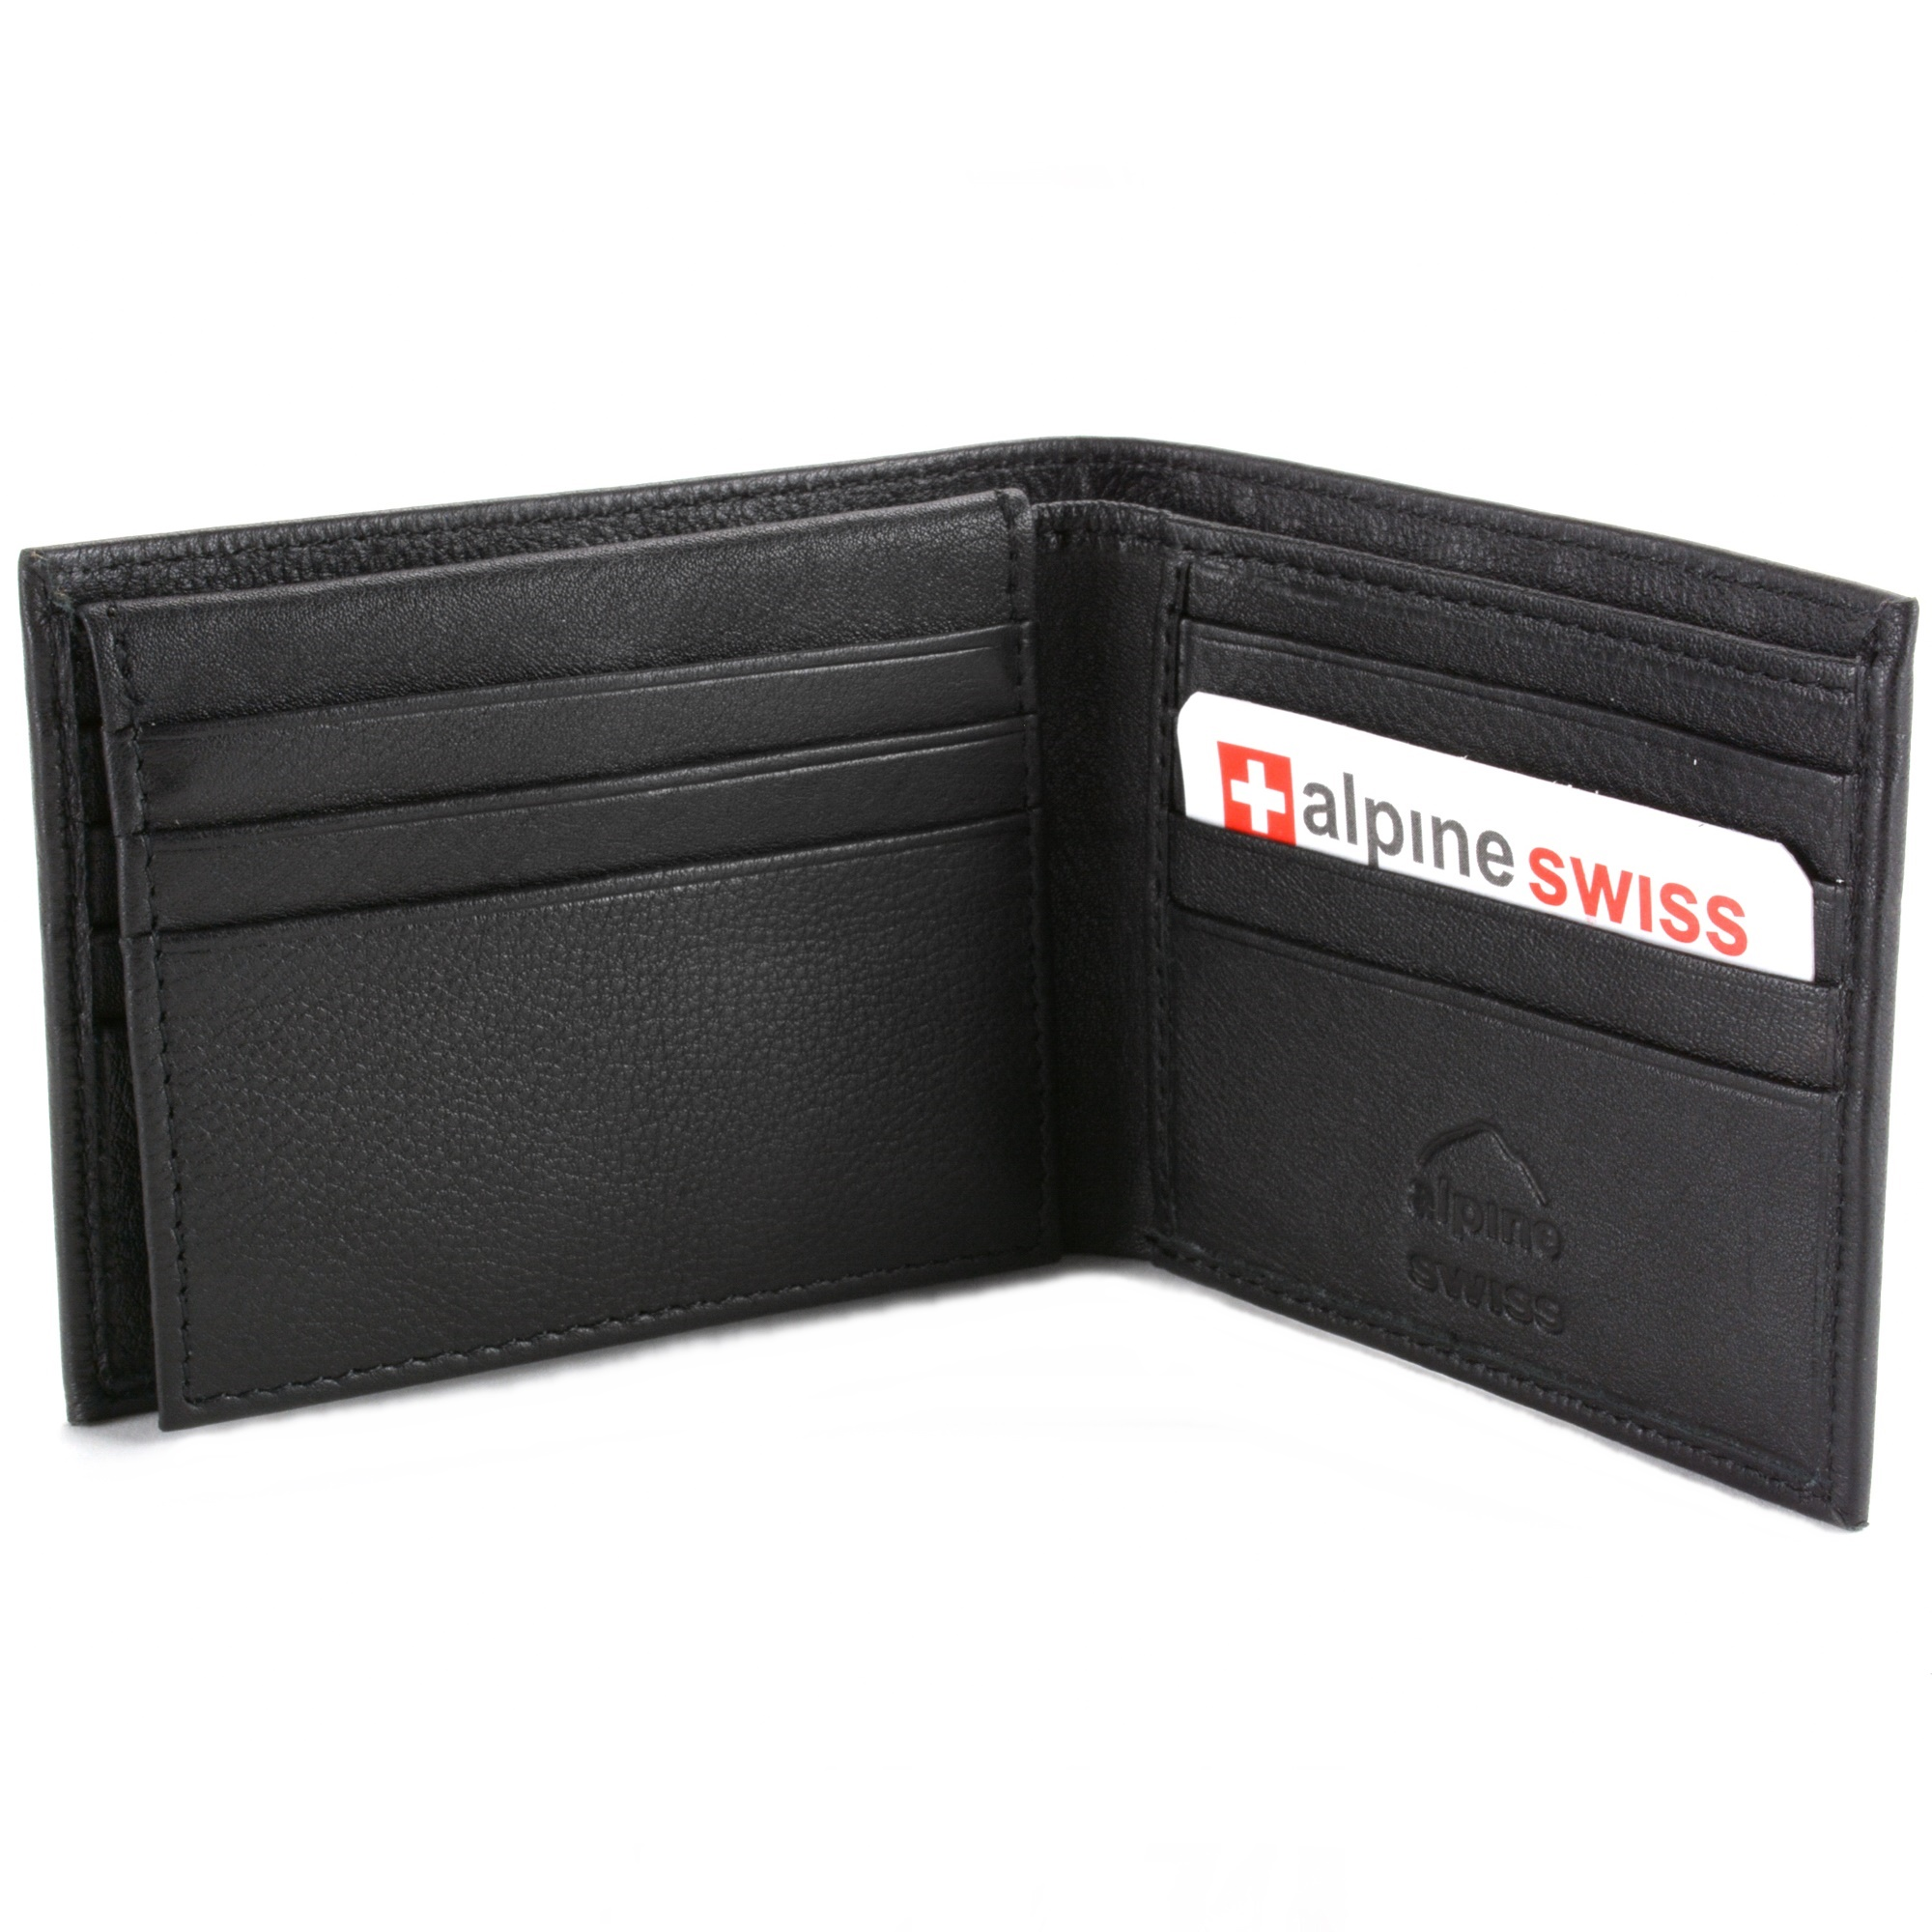 RFID-SAFE-Alpine-Swiss-Mens-Deluxe-Wallet-Genuine-Leather-14-Pocket-ID-Bifold thumbnail 15